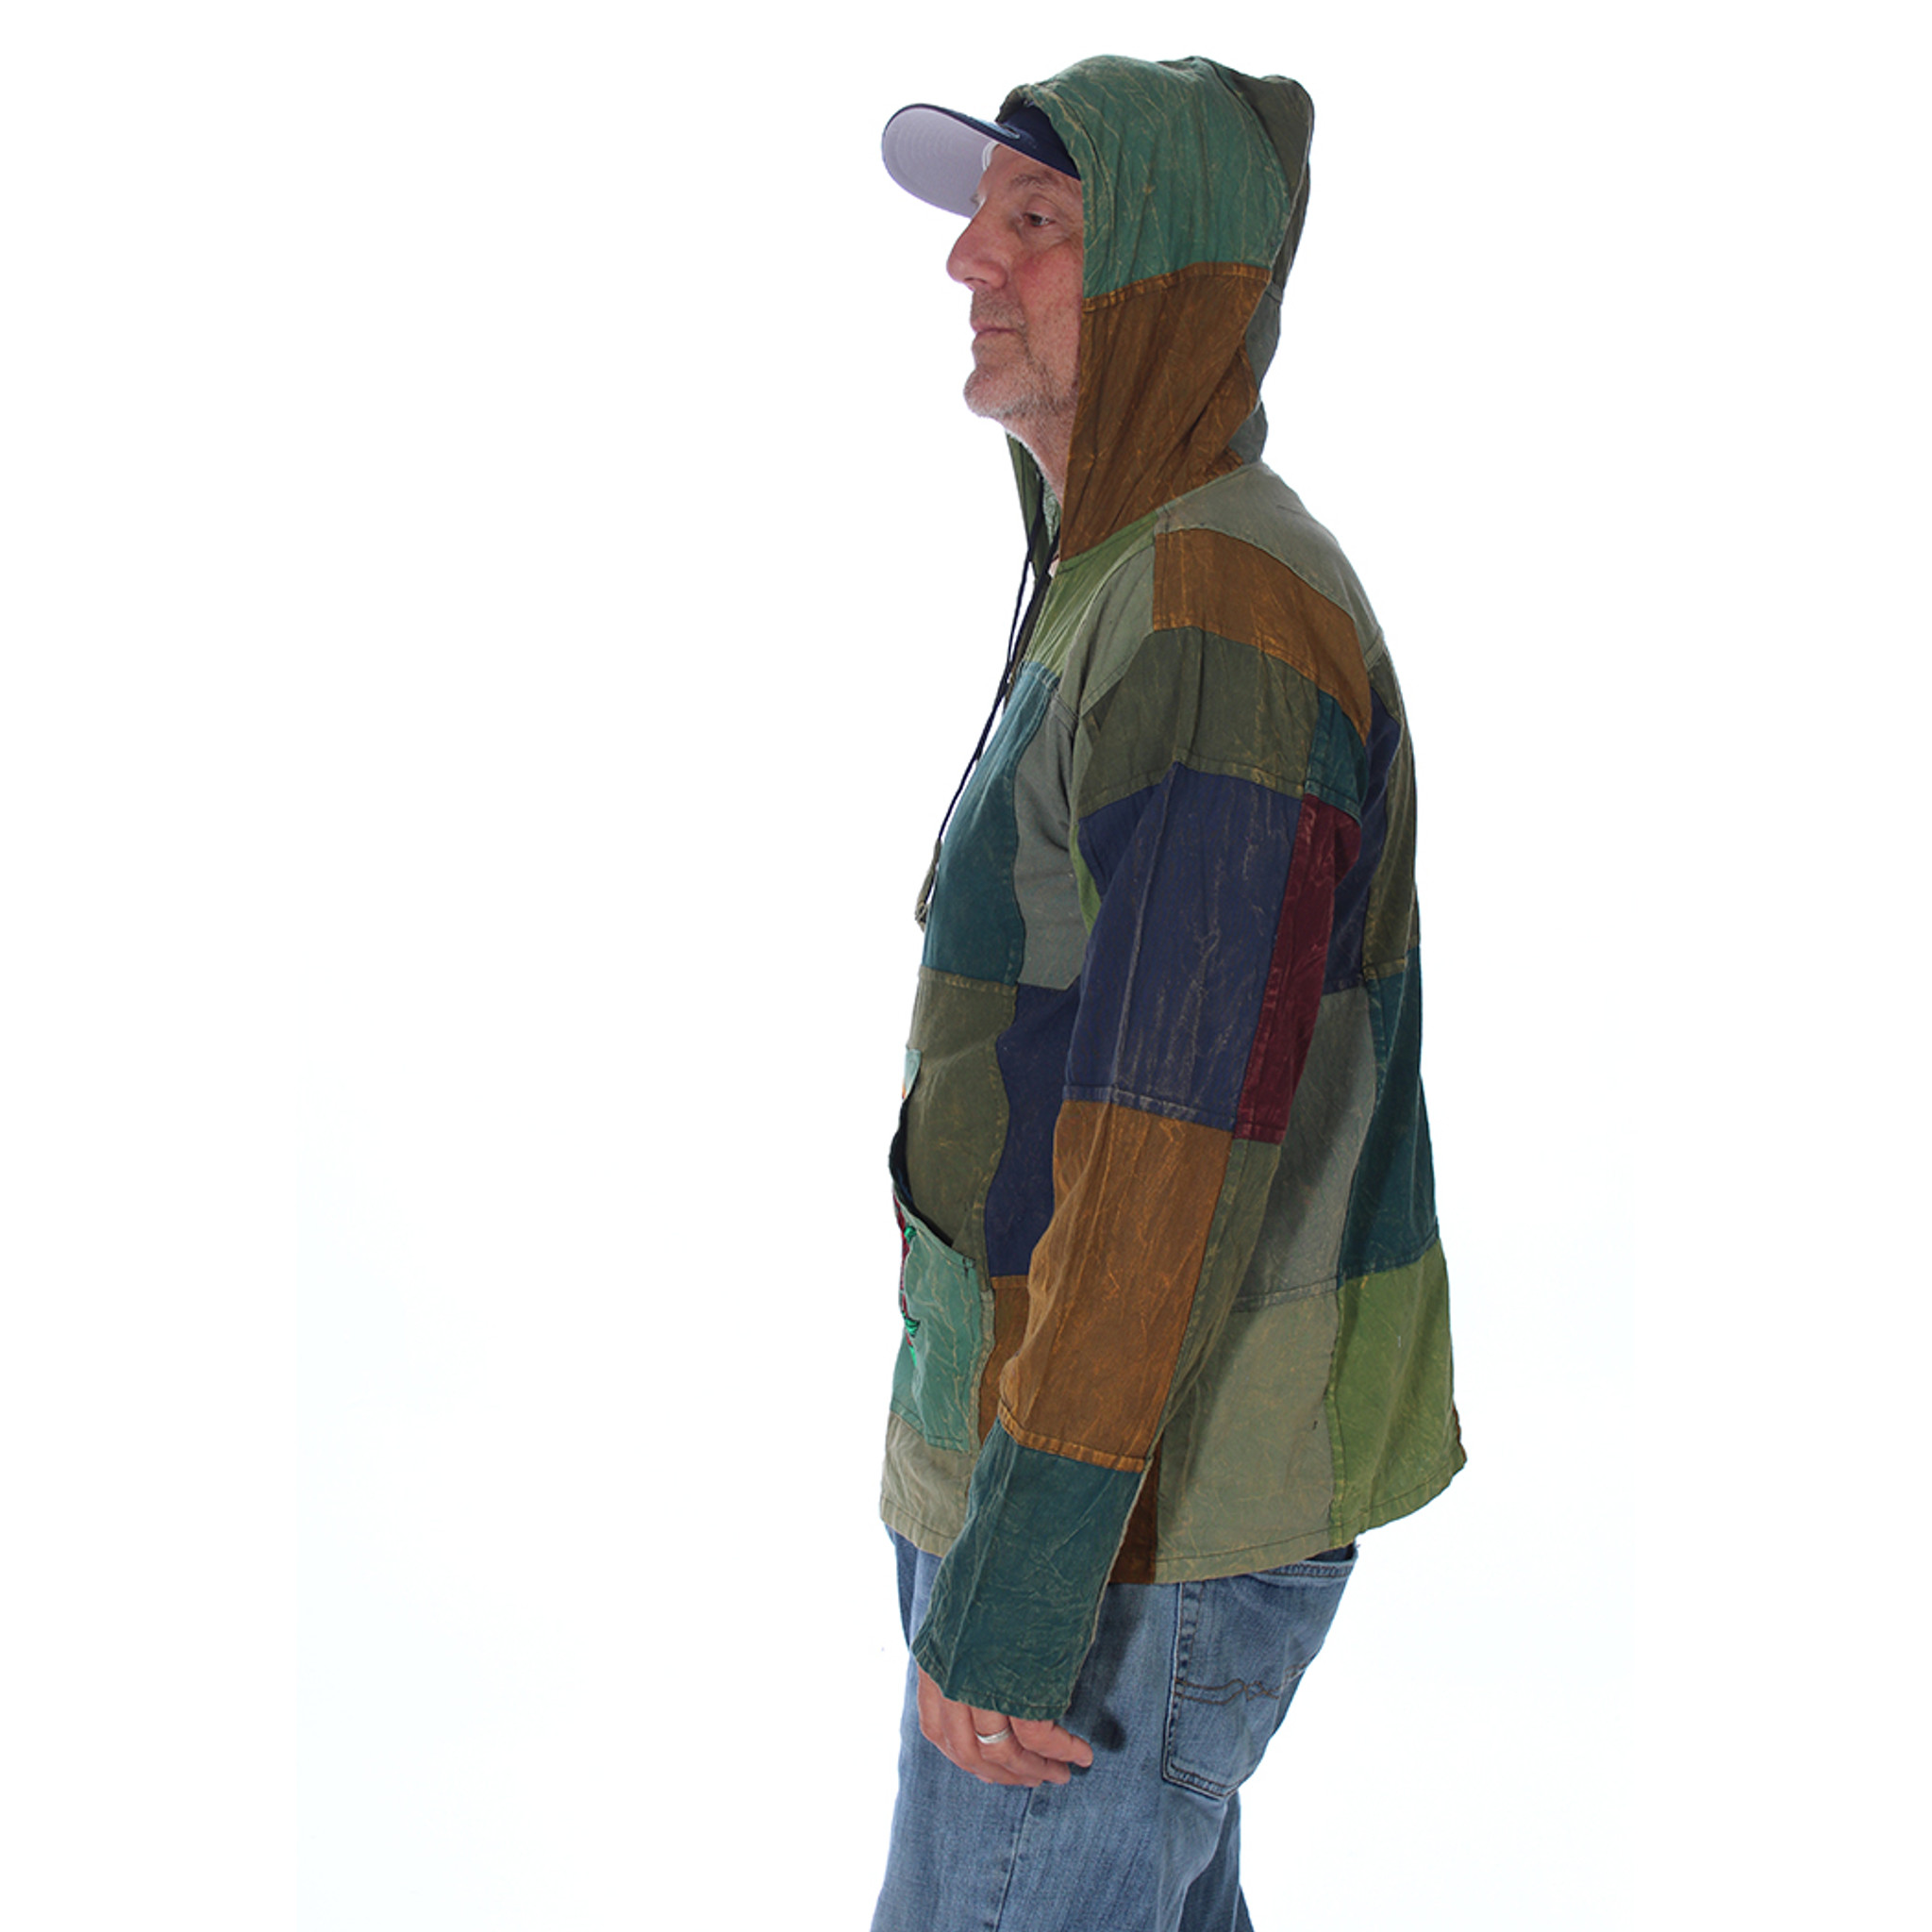 BLOW AWAY SYF HOODY Cotton Patchwork Grateful Dead Hoody w/ Rose SYF Embroidery